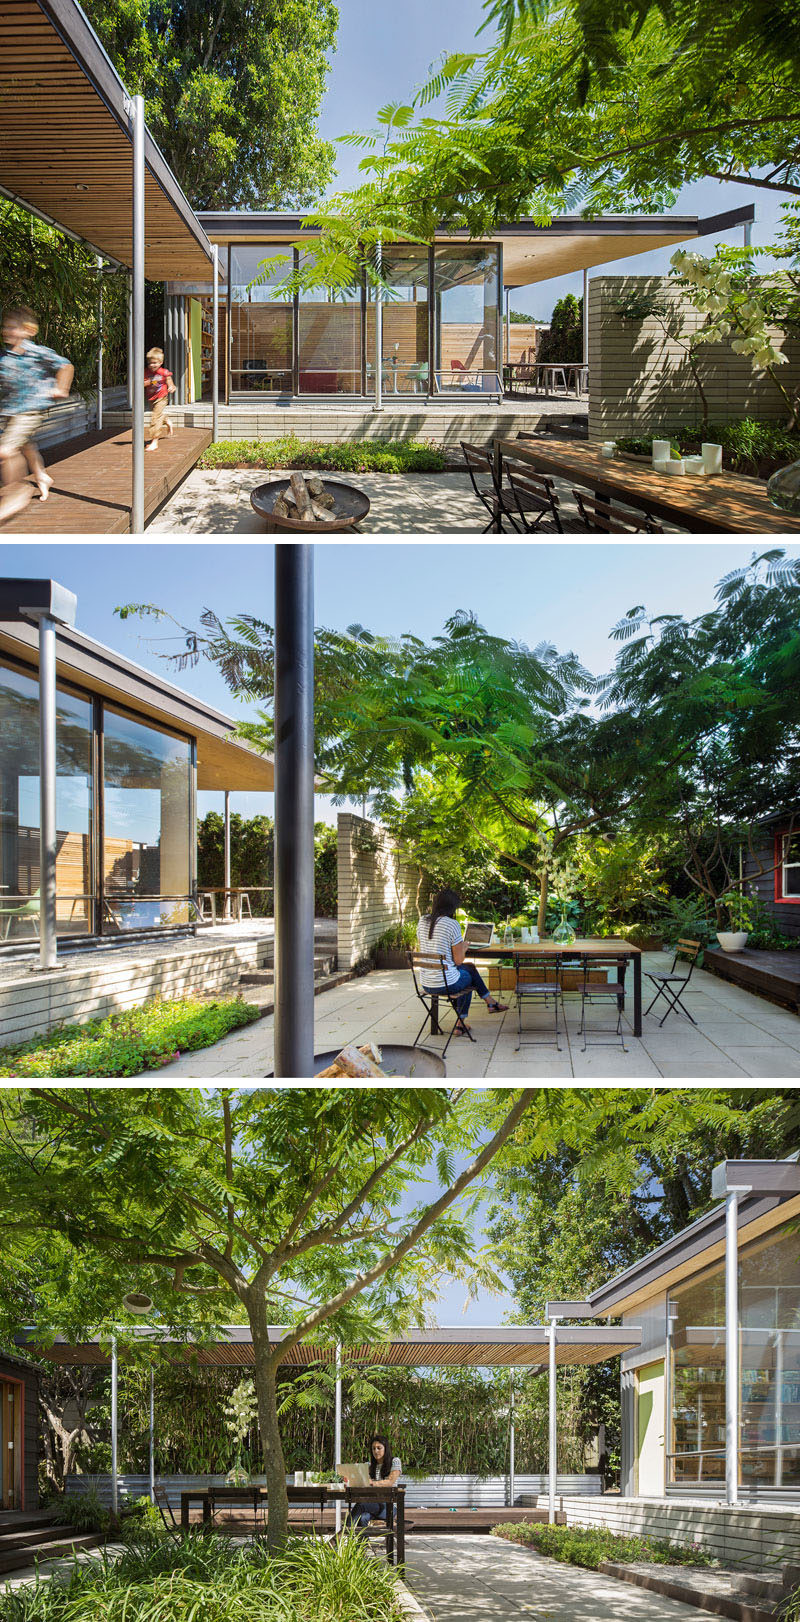 This courtyard between the main house and a backyard studio features a central paved terrace with a protected private area for dining, entertaining, lounging and year-round play. A central Silk tree provides dappled shade in summer. #Courtyard #Garden #Landscaping